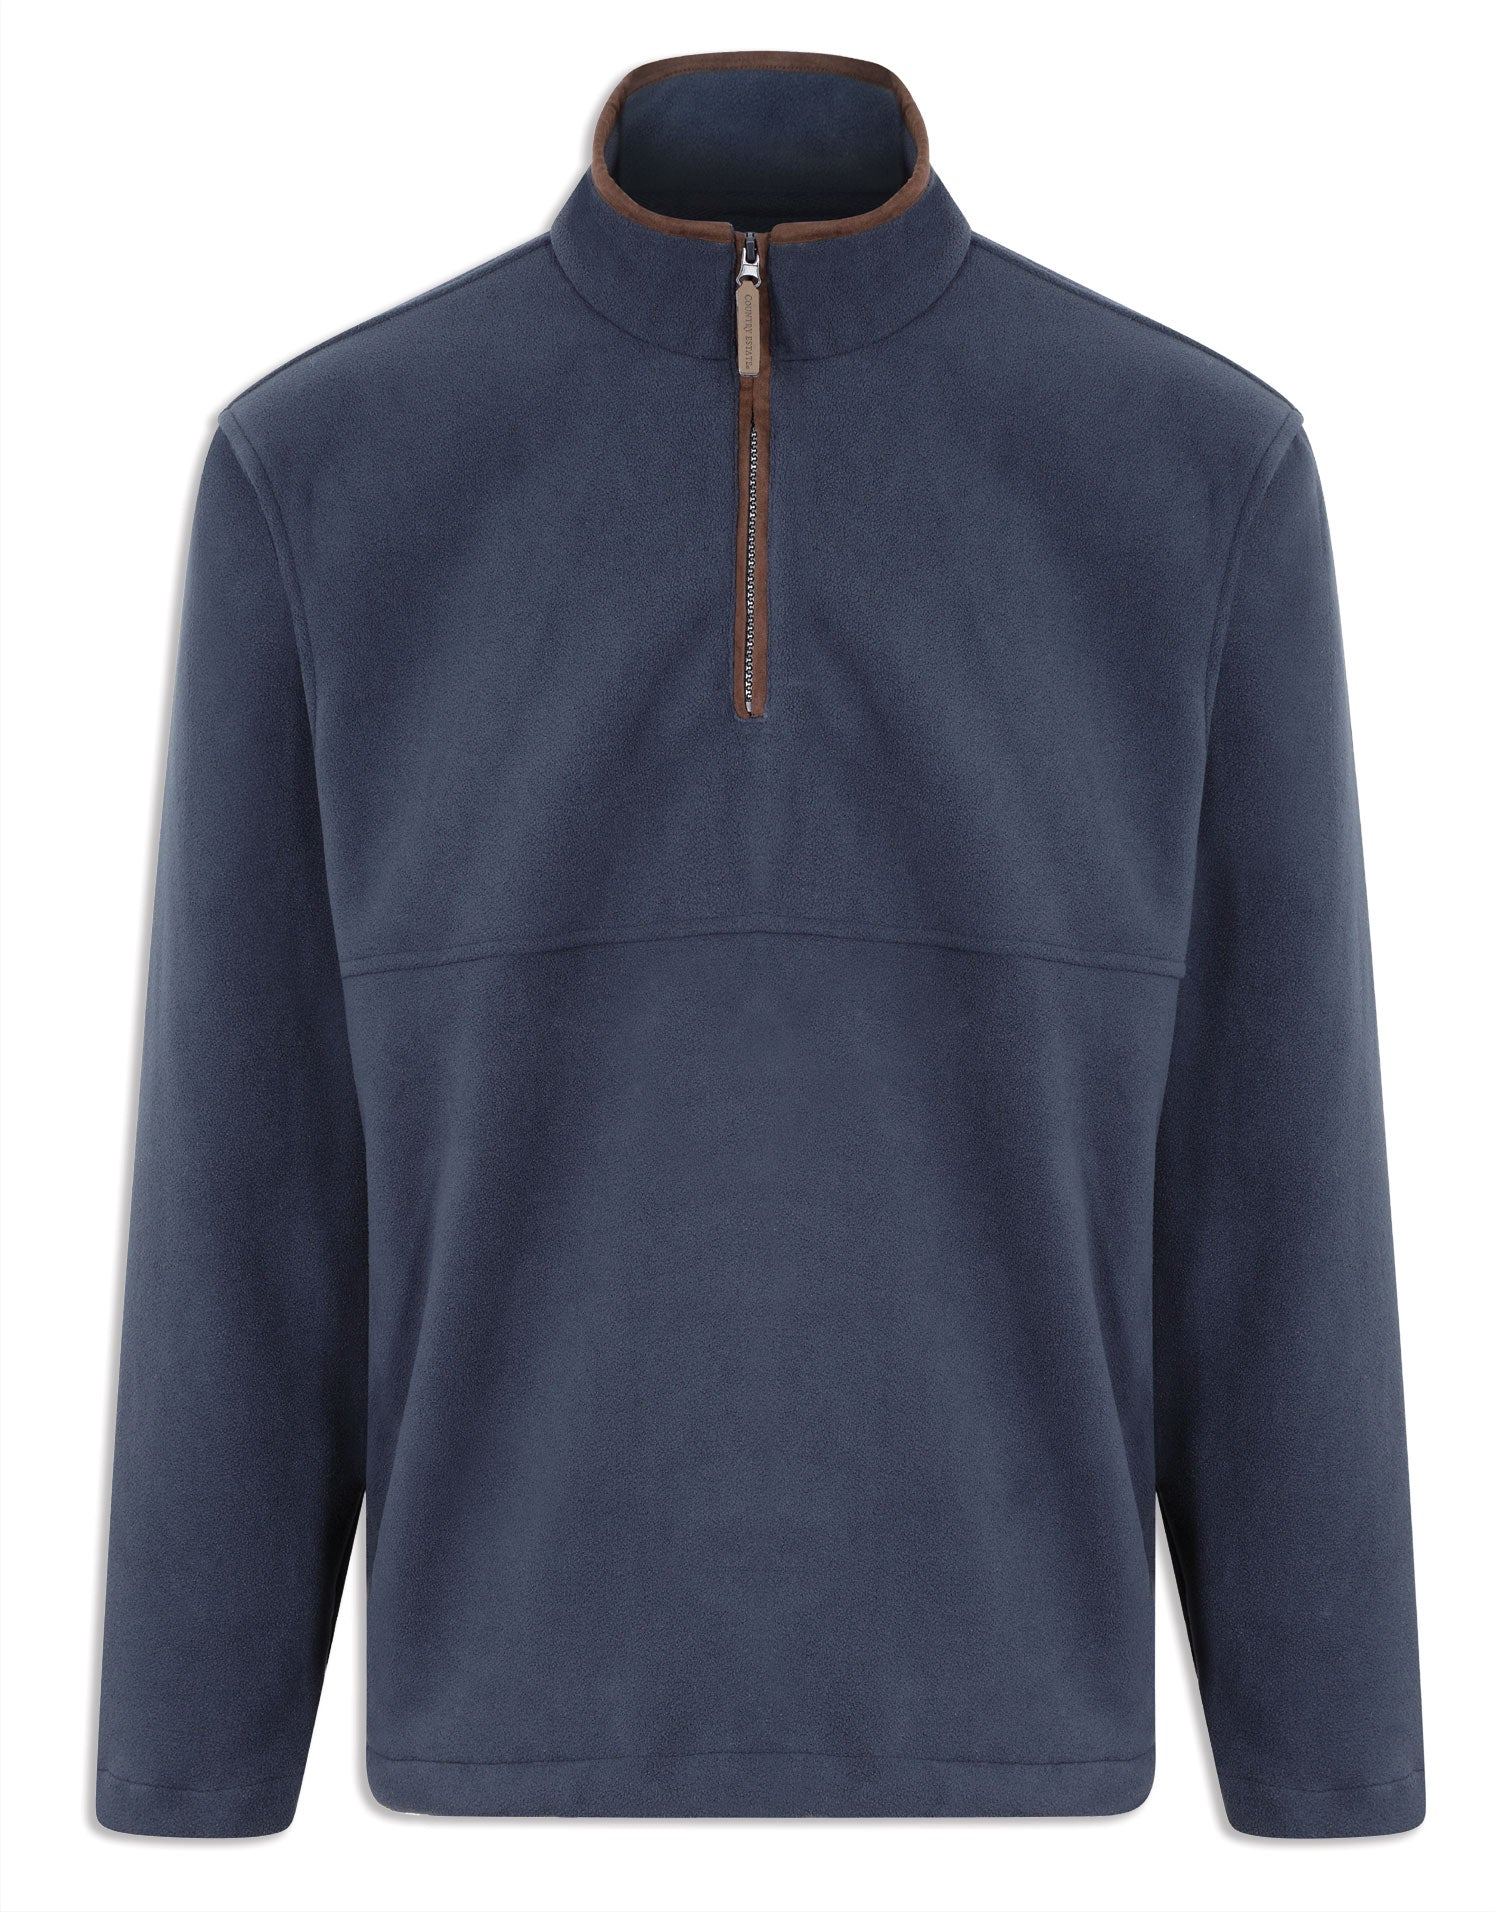 Navy Champion Oban Half Zip Fleece